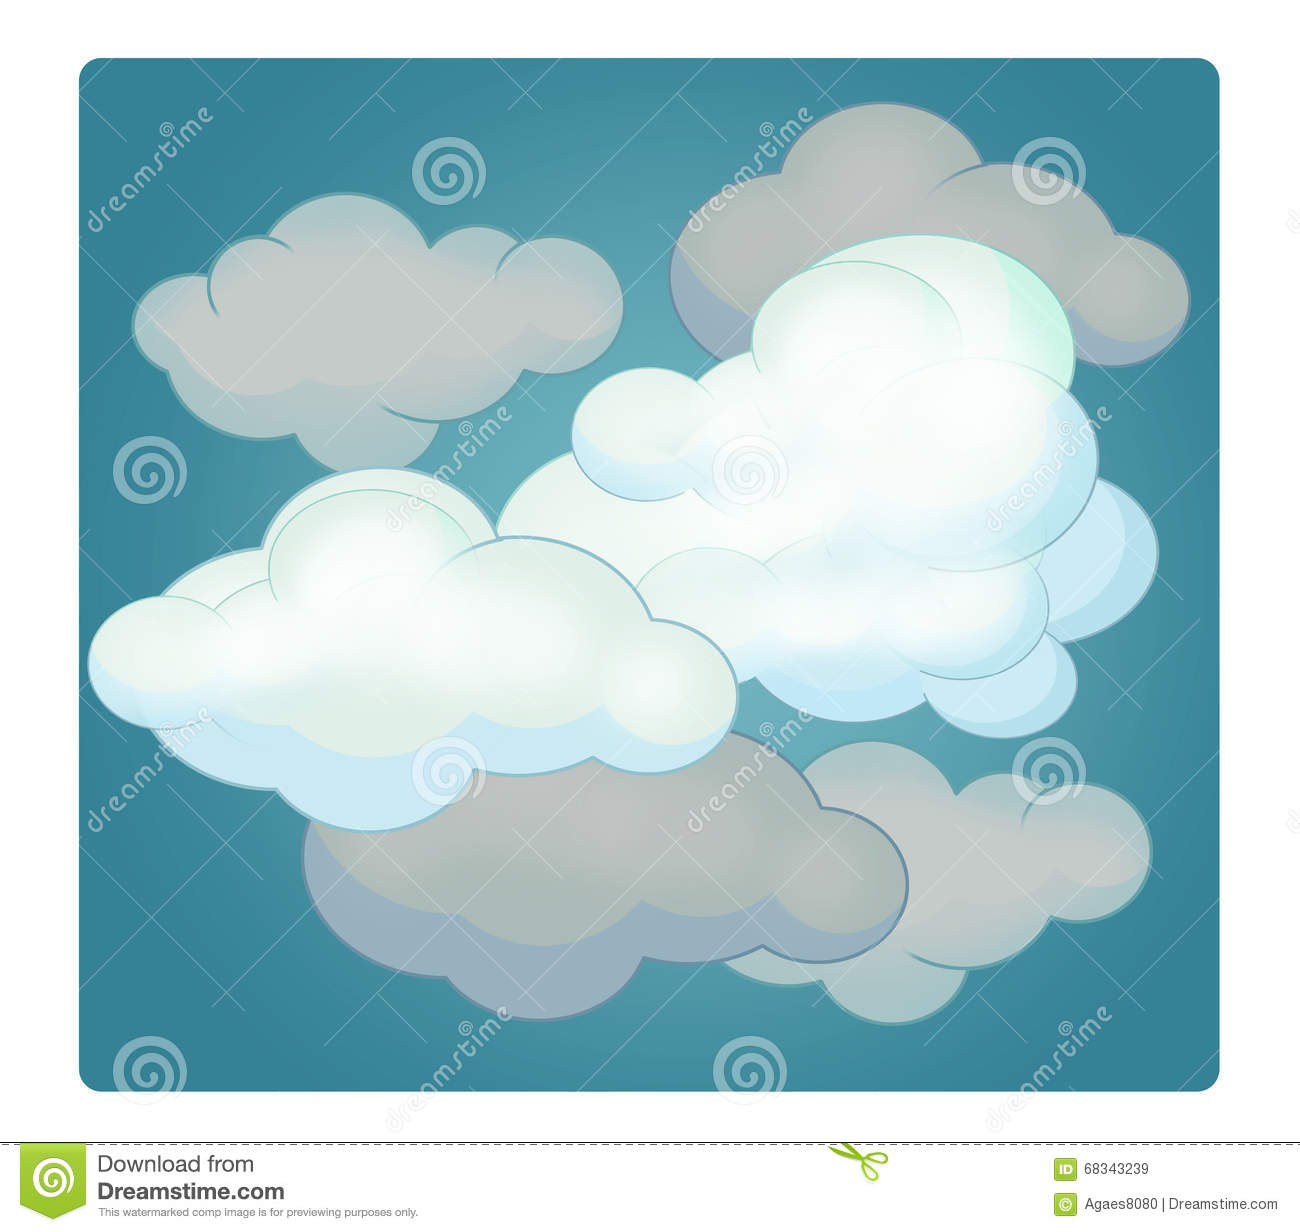 cartoon scene with weather cloudy stock illustration cloud clip art black and white cloud clip art outline